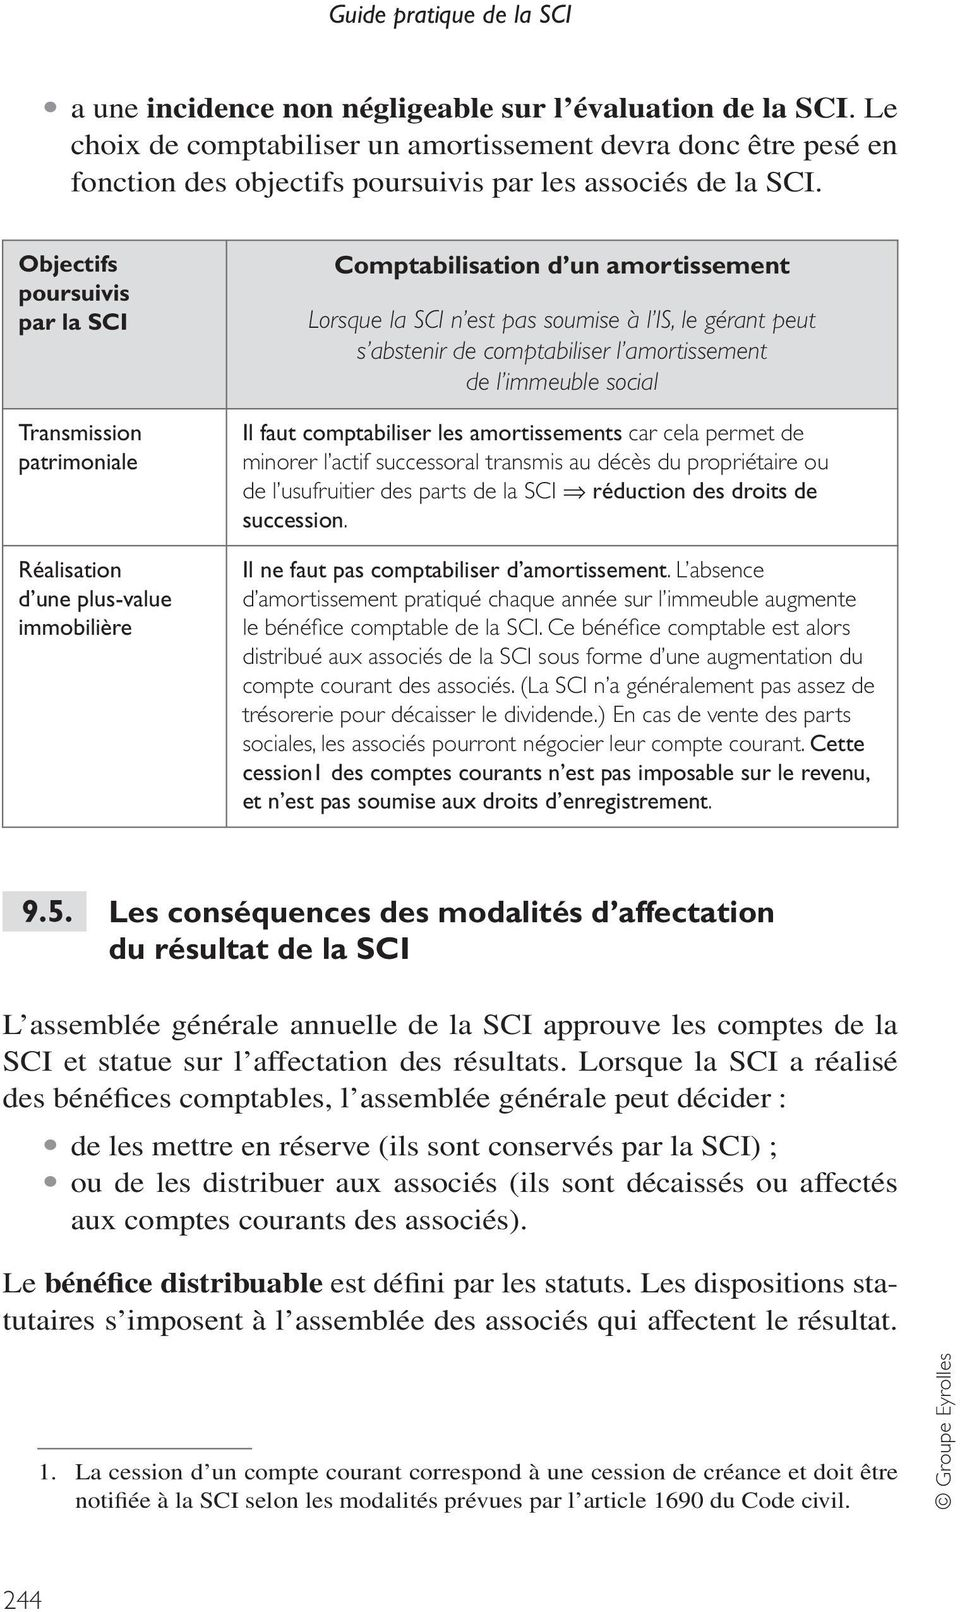 Guide Pratique De La Sci Pdf